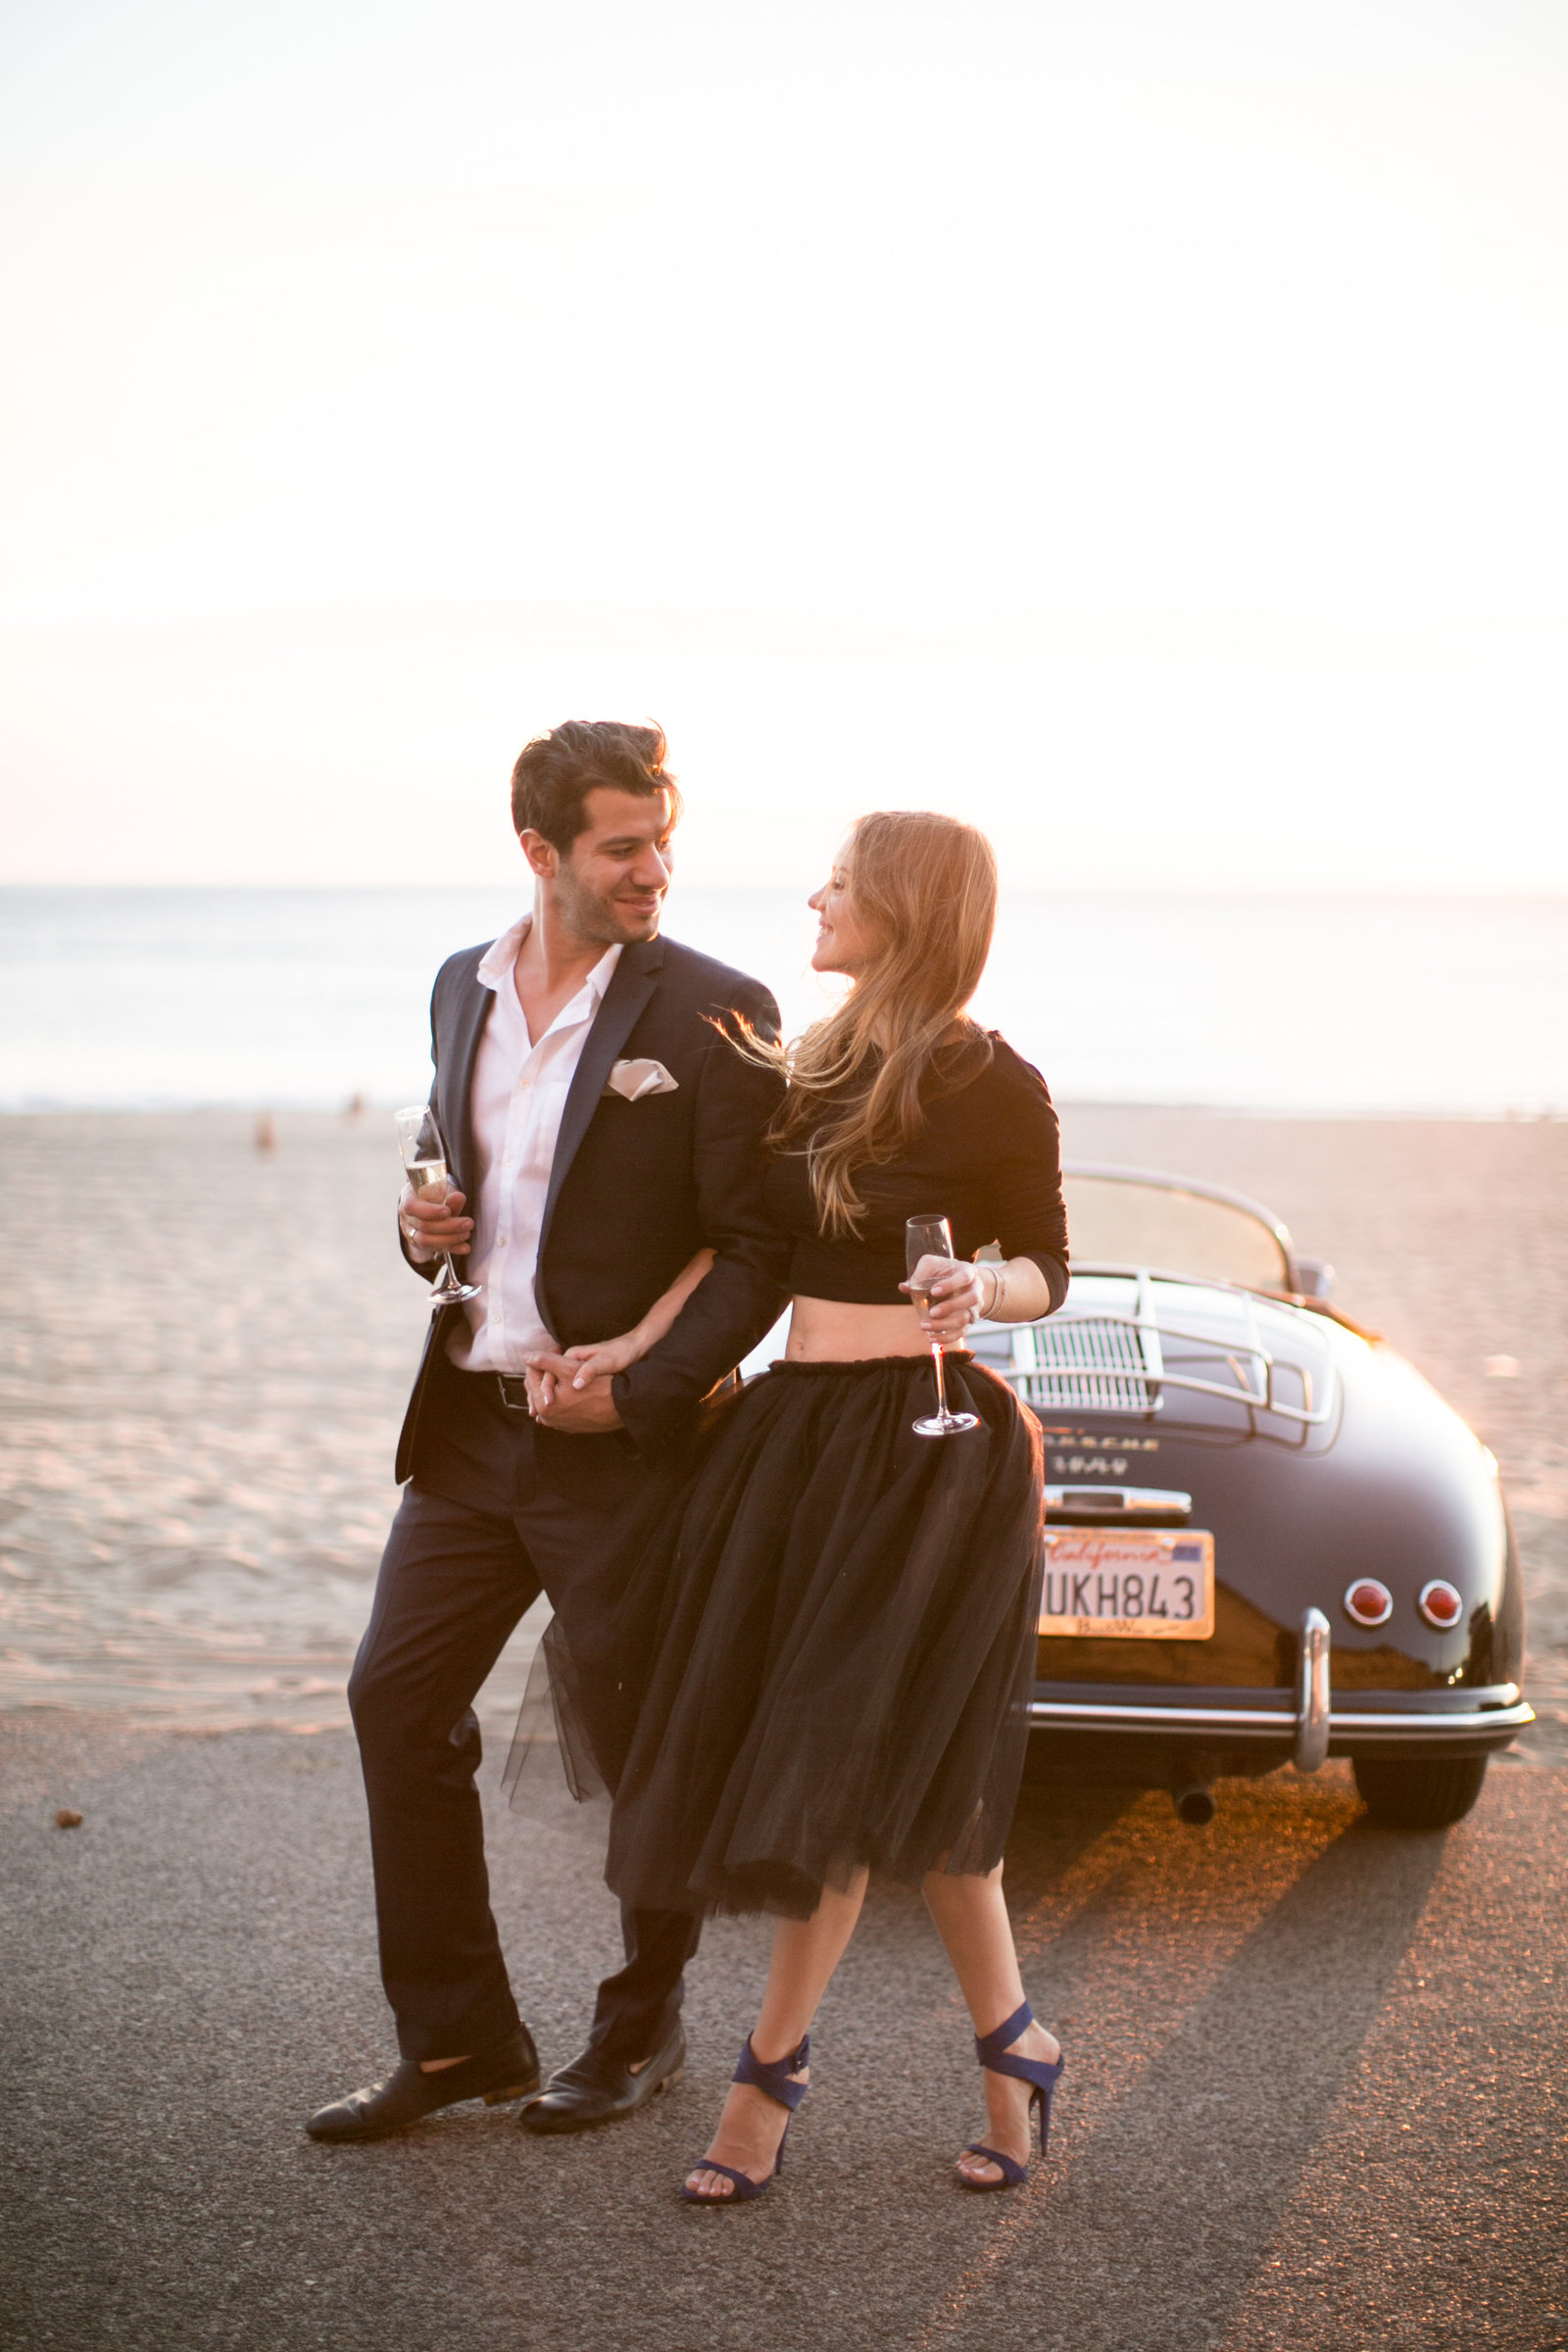 SOUTHERN_CALIFORNIA_WEDDING_PHOTOGRAPHER_JANA_WILLIAMS_bhldn-131